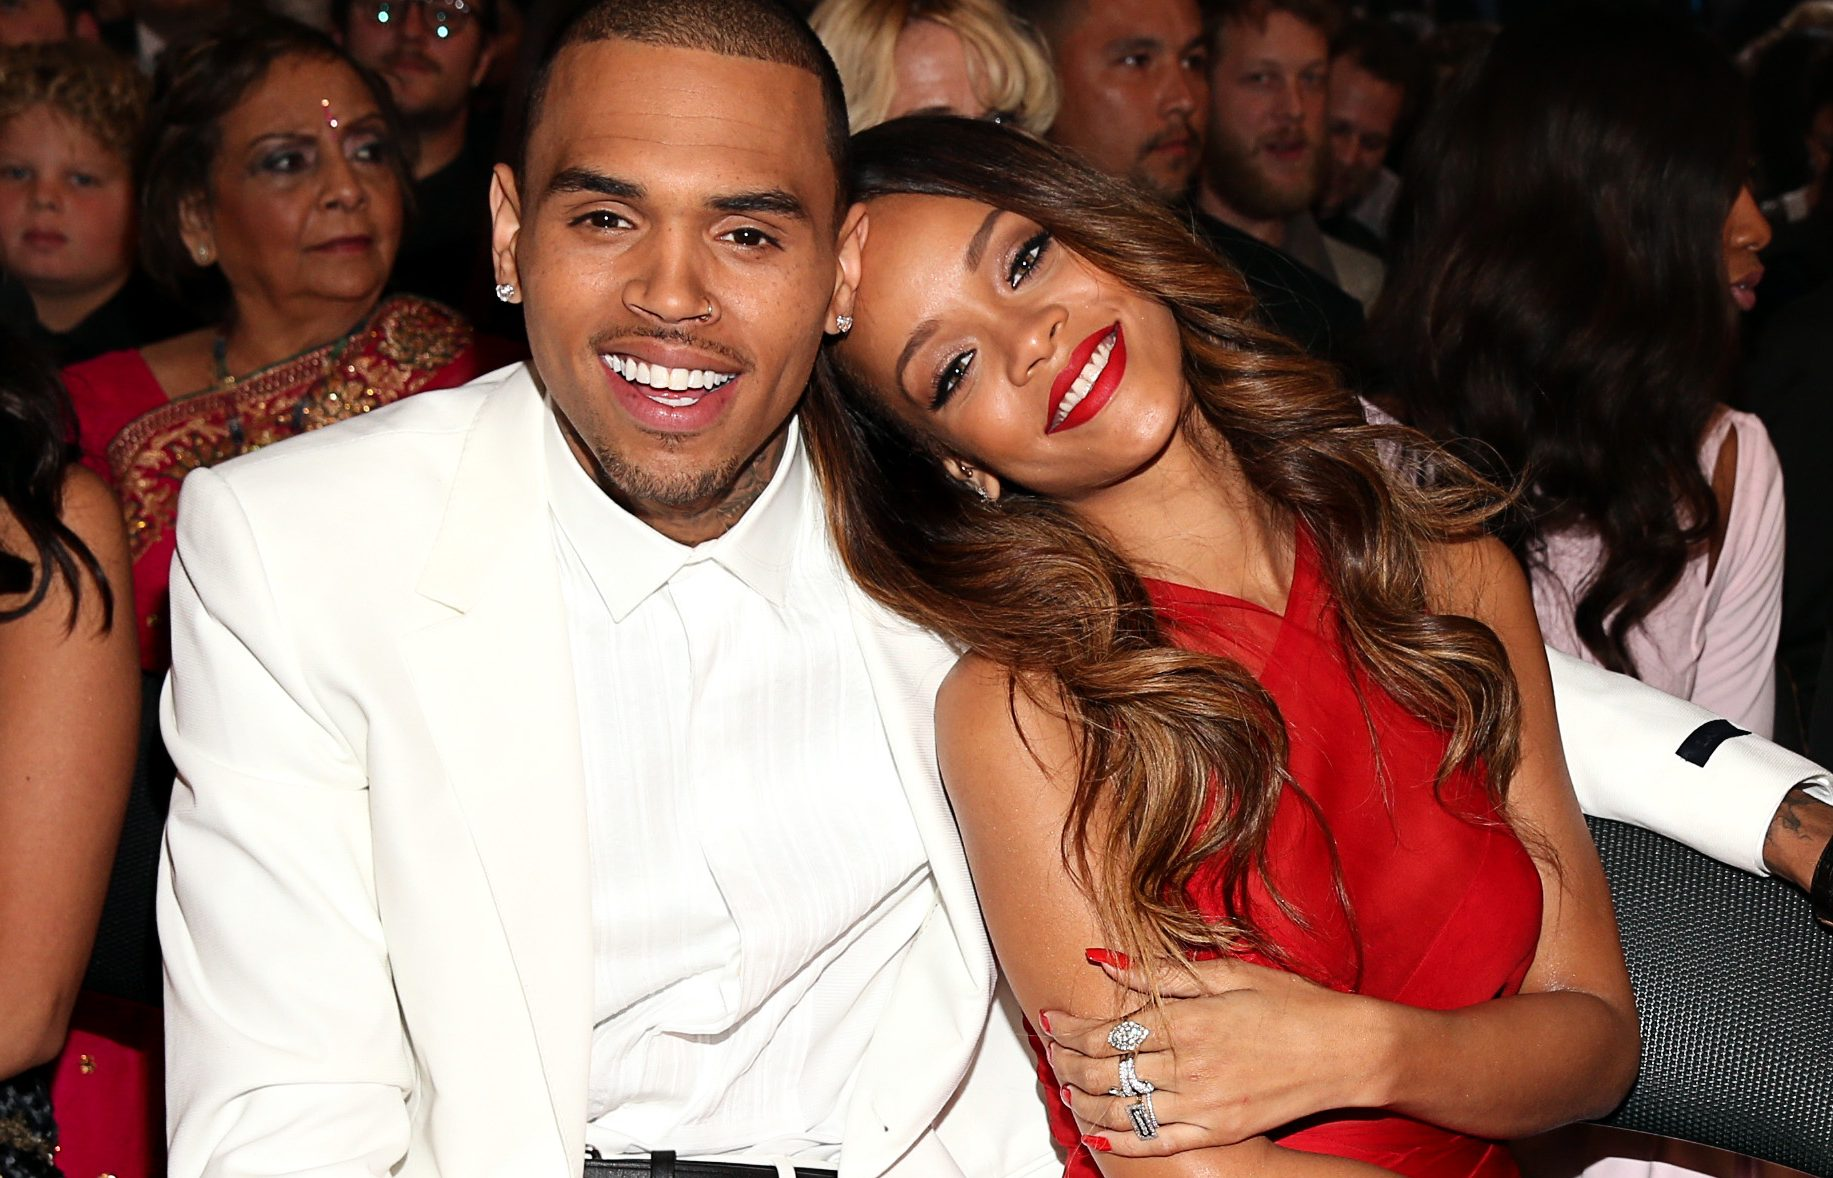 Chris Brown says Rihanna was 'spitting blood' as he recalls pre-Grammys assault